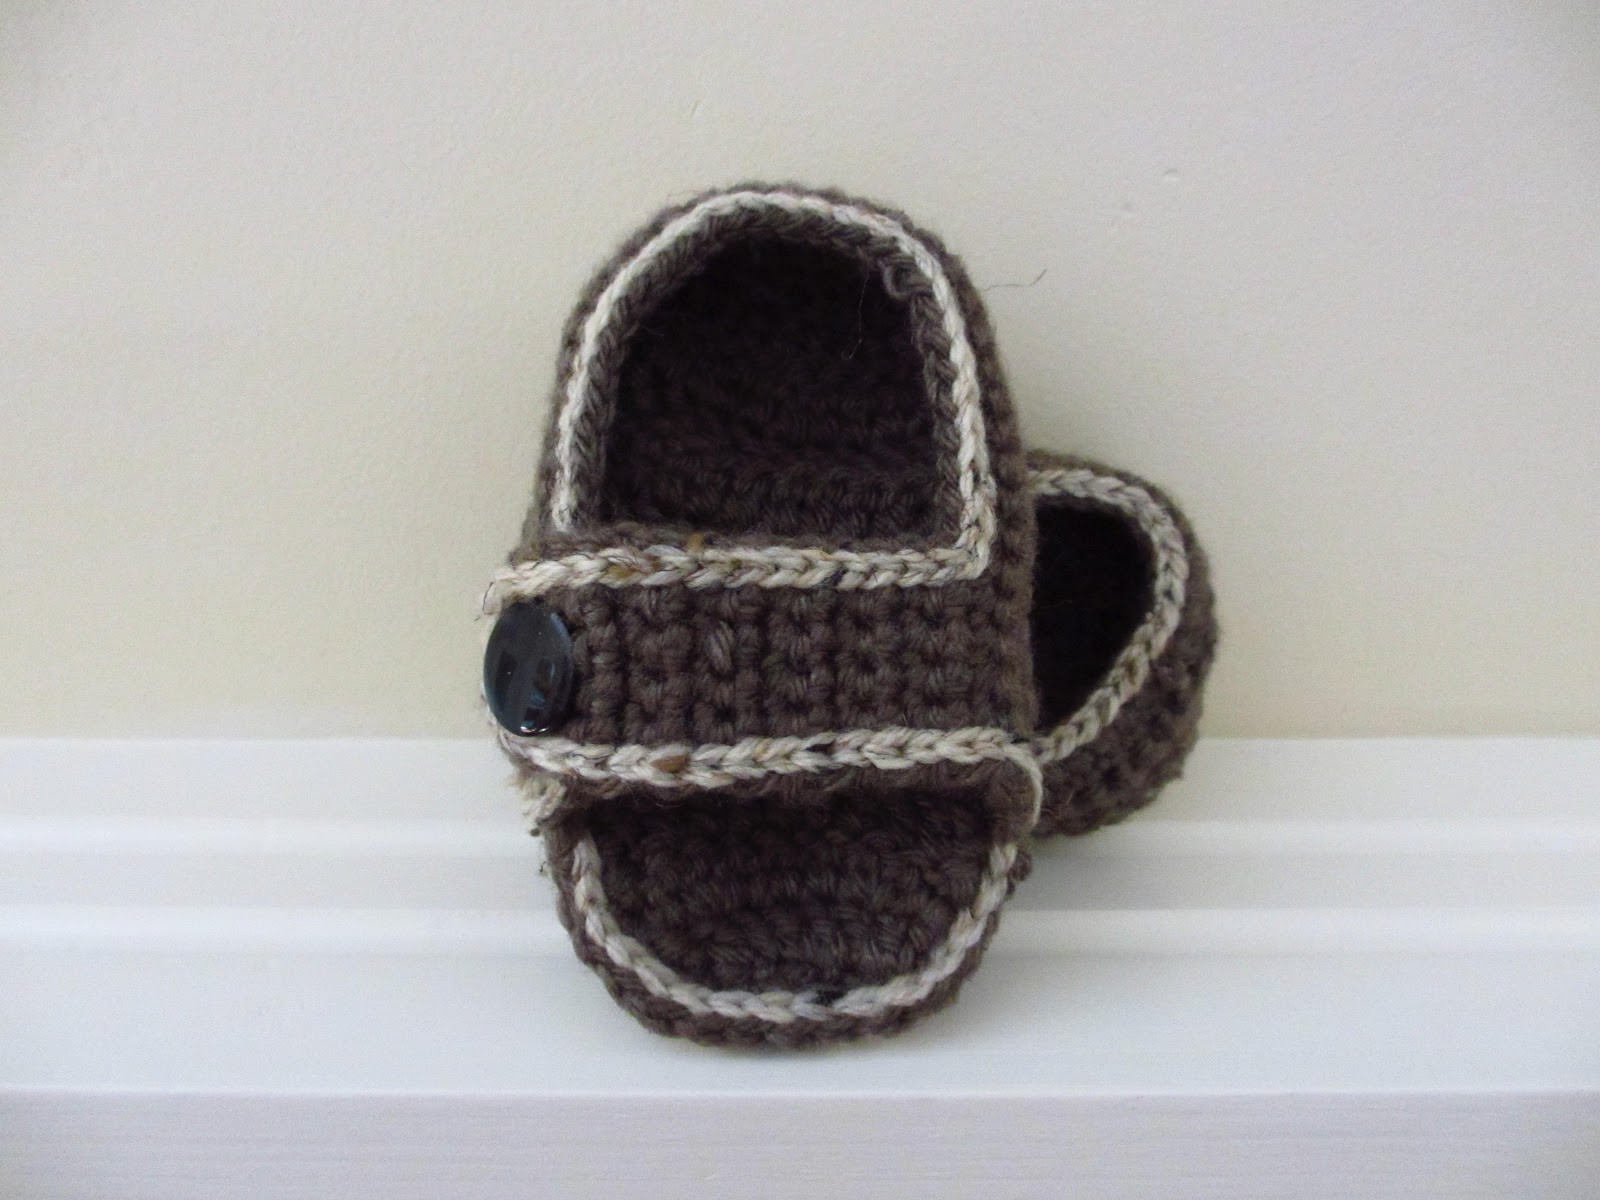 Crochet Baby Sandals Pattern Lovely 60 Adorable and Free Crochet Baby Sandals Patterns Of Perfect 43 Photos Crochet Baby Sandals Pattern